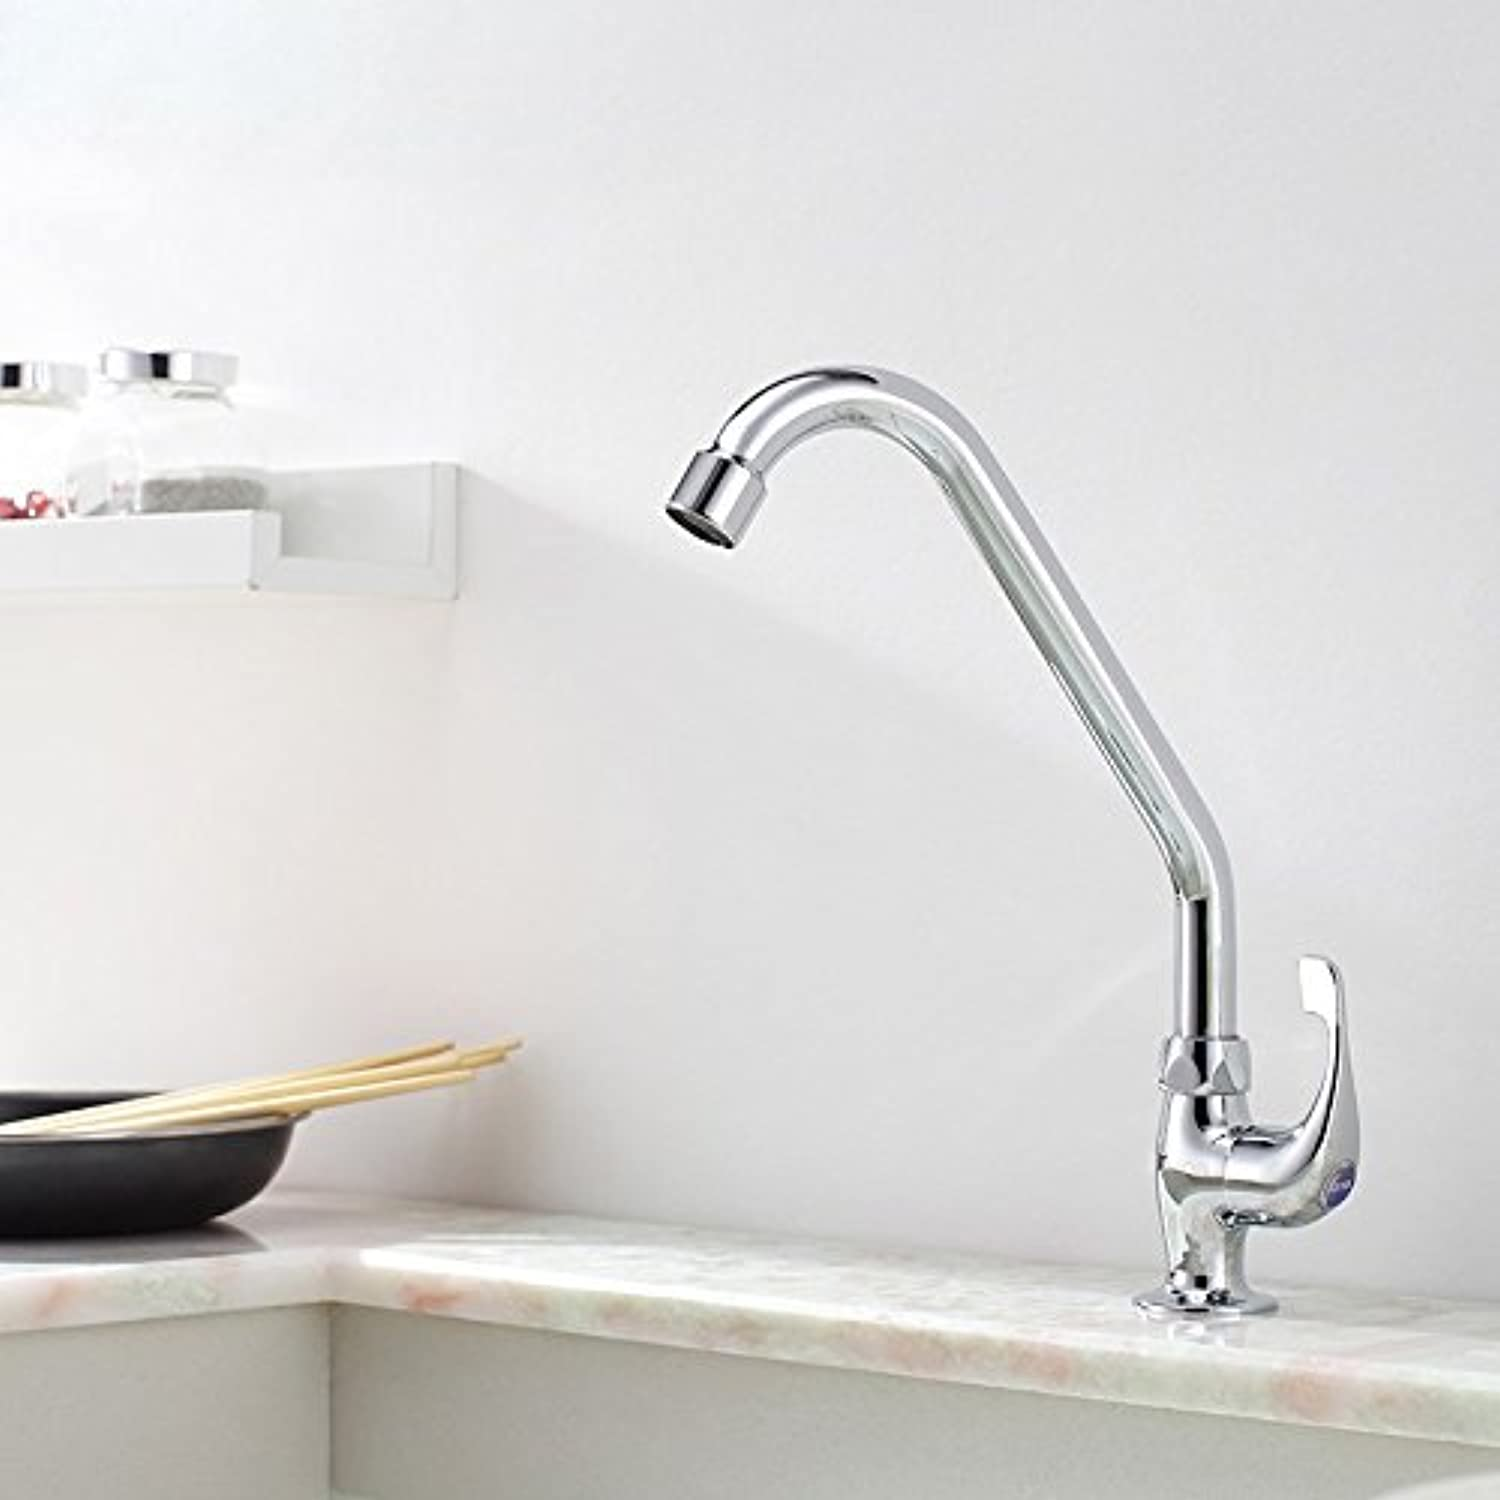 Commercial Single Lever Pull Down Kitchen Sink Faucet Brass Constructed Polished Single Cold Kitchen Faucet, Copper Single Handle Single Hole Sinking Sink Double Sink Bathroom Faucet